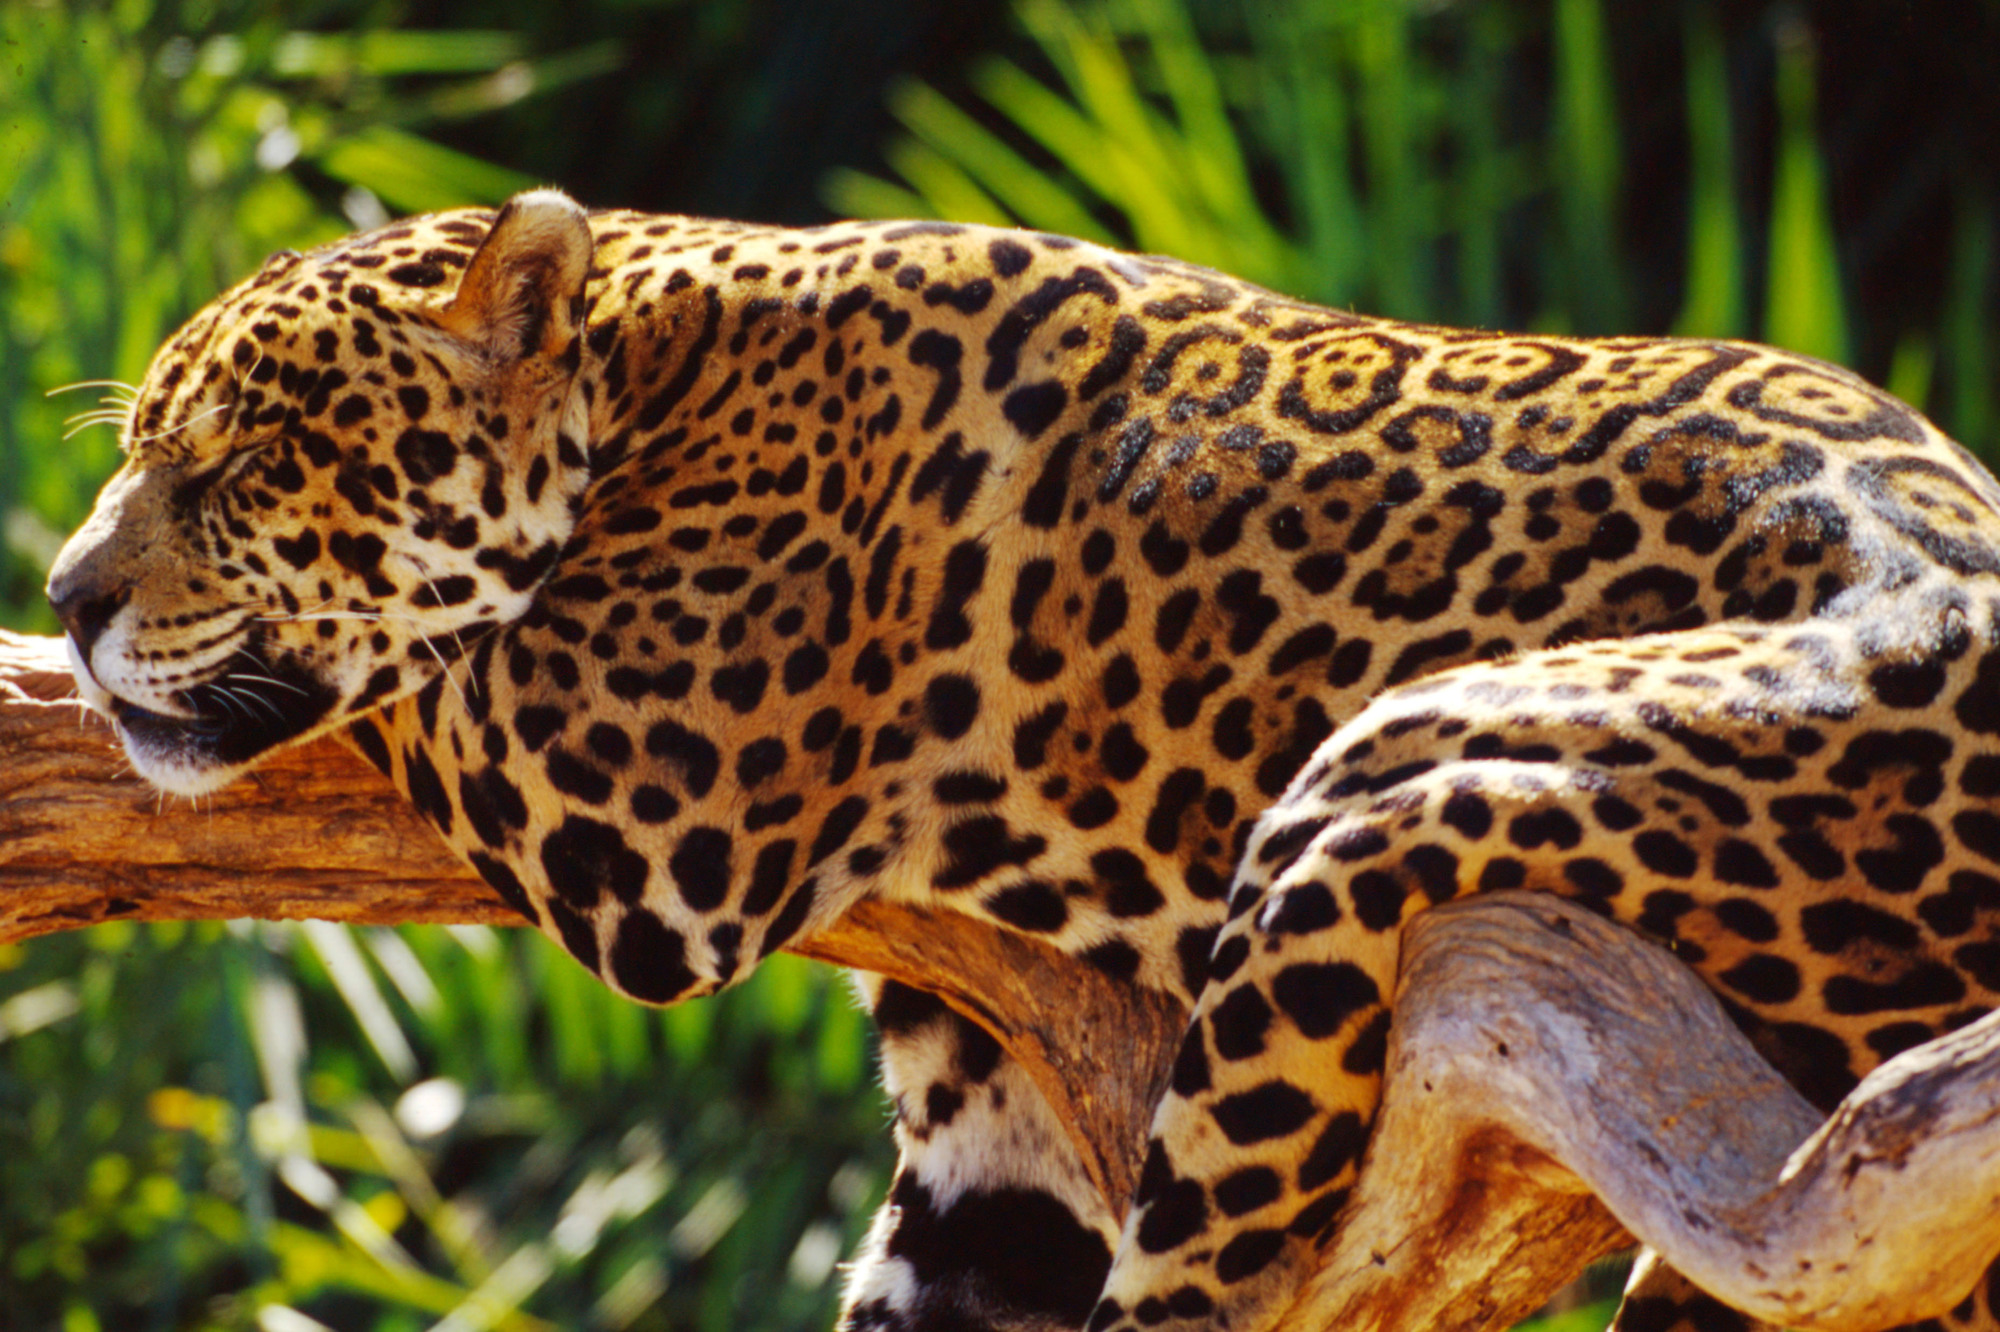 Jaguar sleeping on a branch